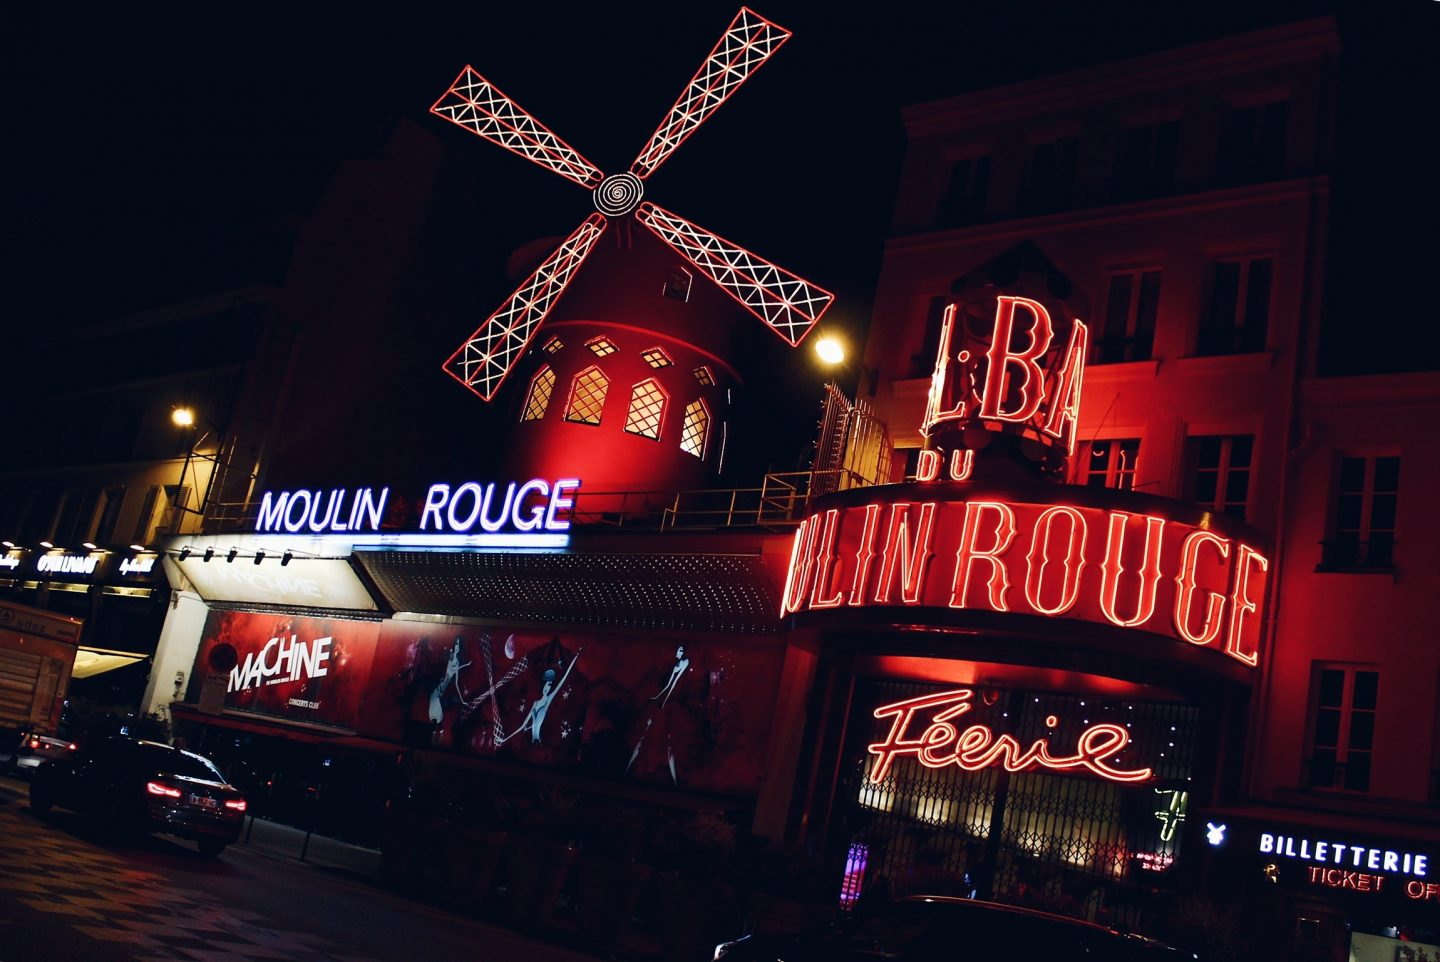 Visiting the Moulin Rouge theater during a weekend in Paris, France